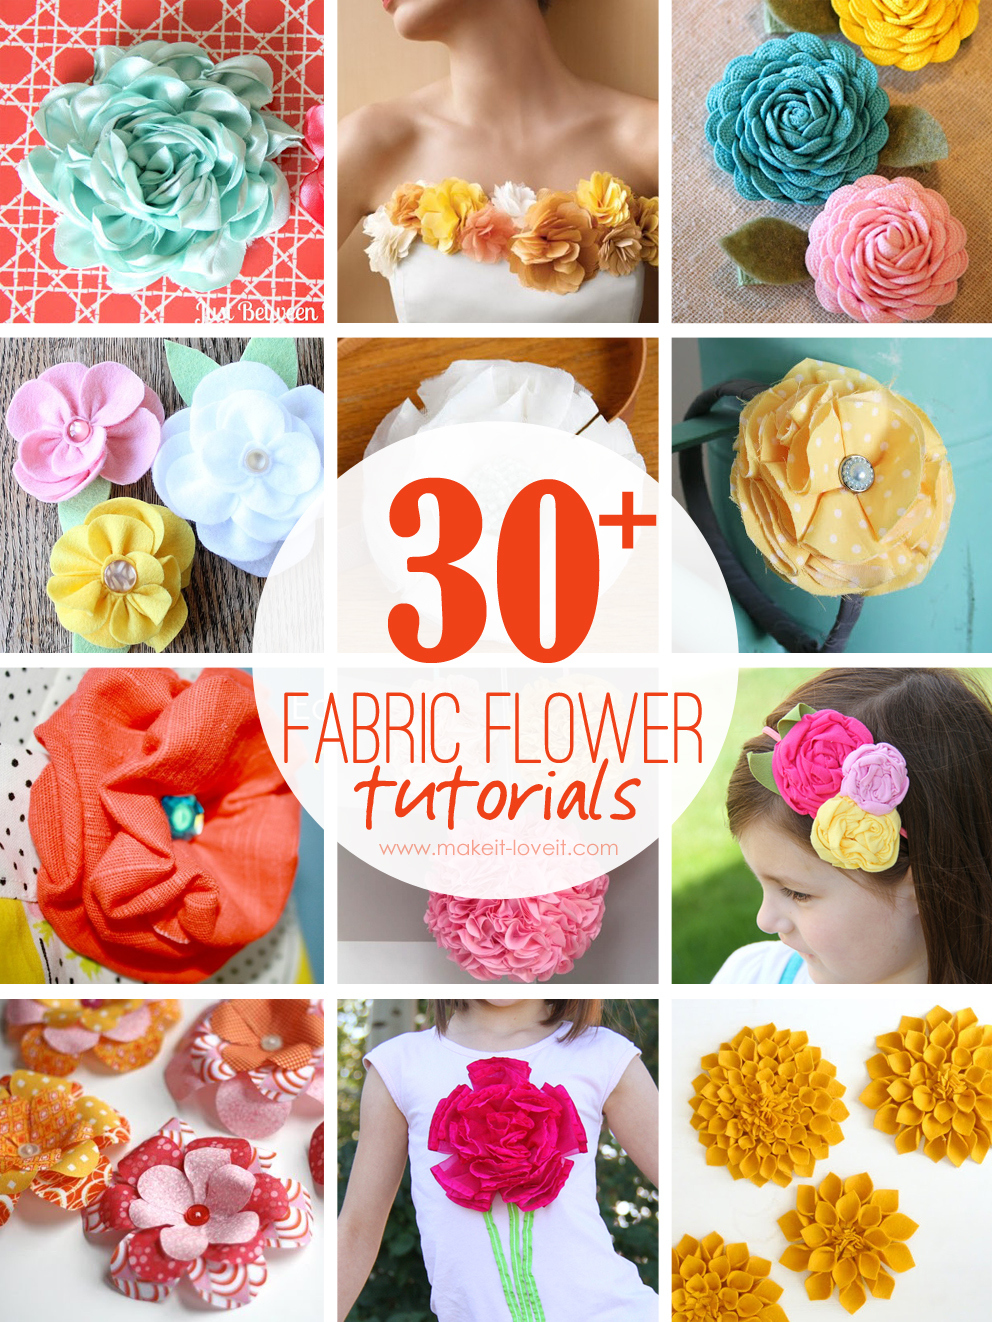 30+ DIY Fabric Flower Tutorials | via Make It and Love It